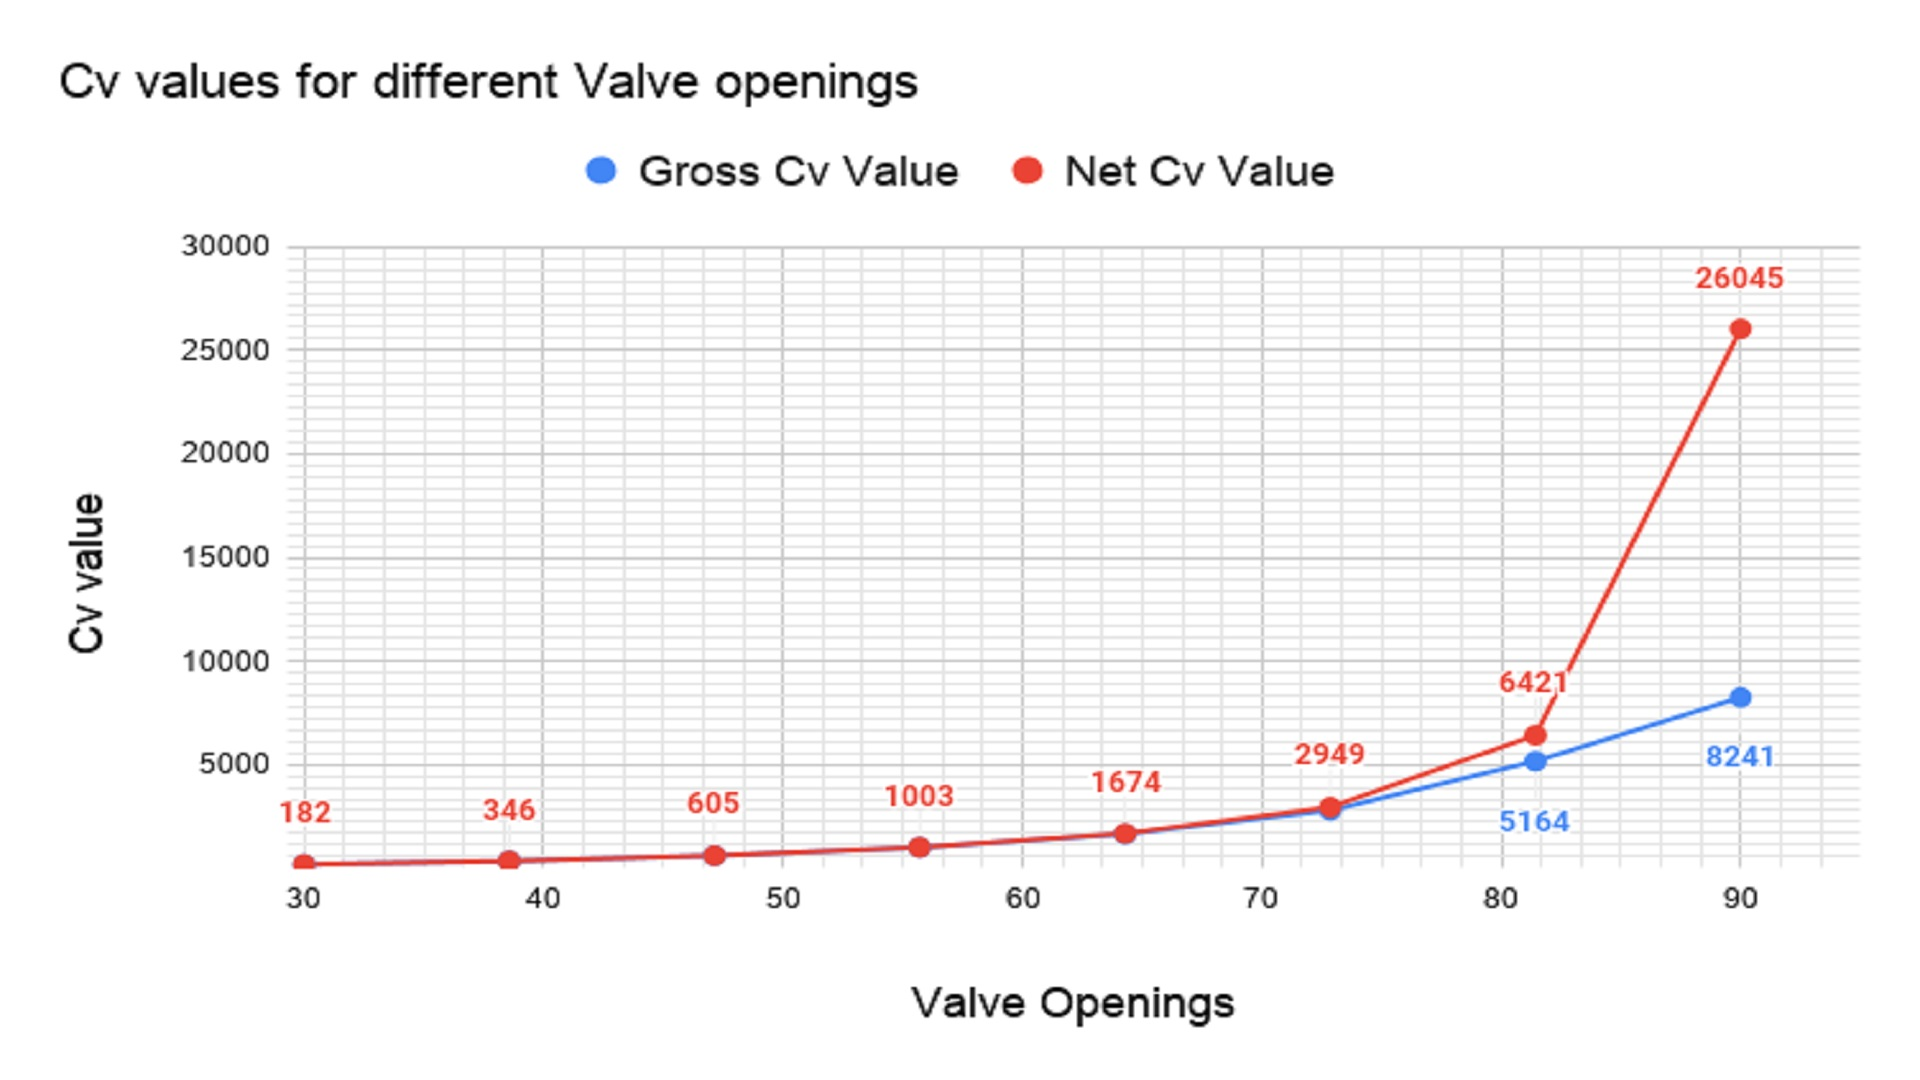 Cv values for different openings